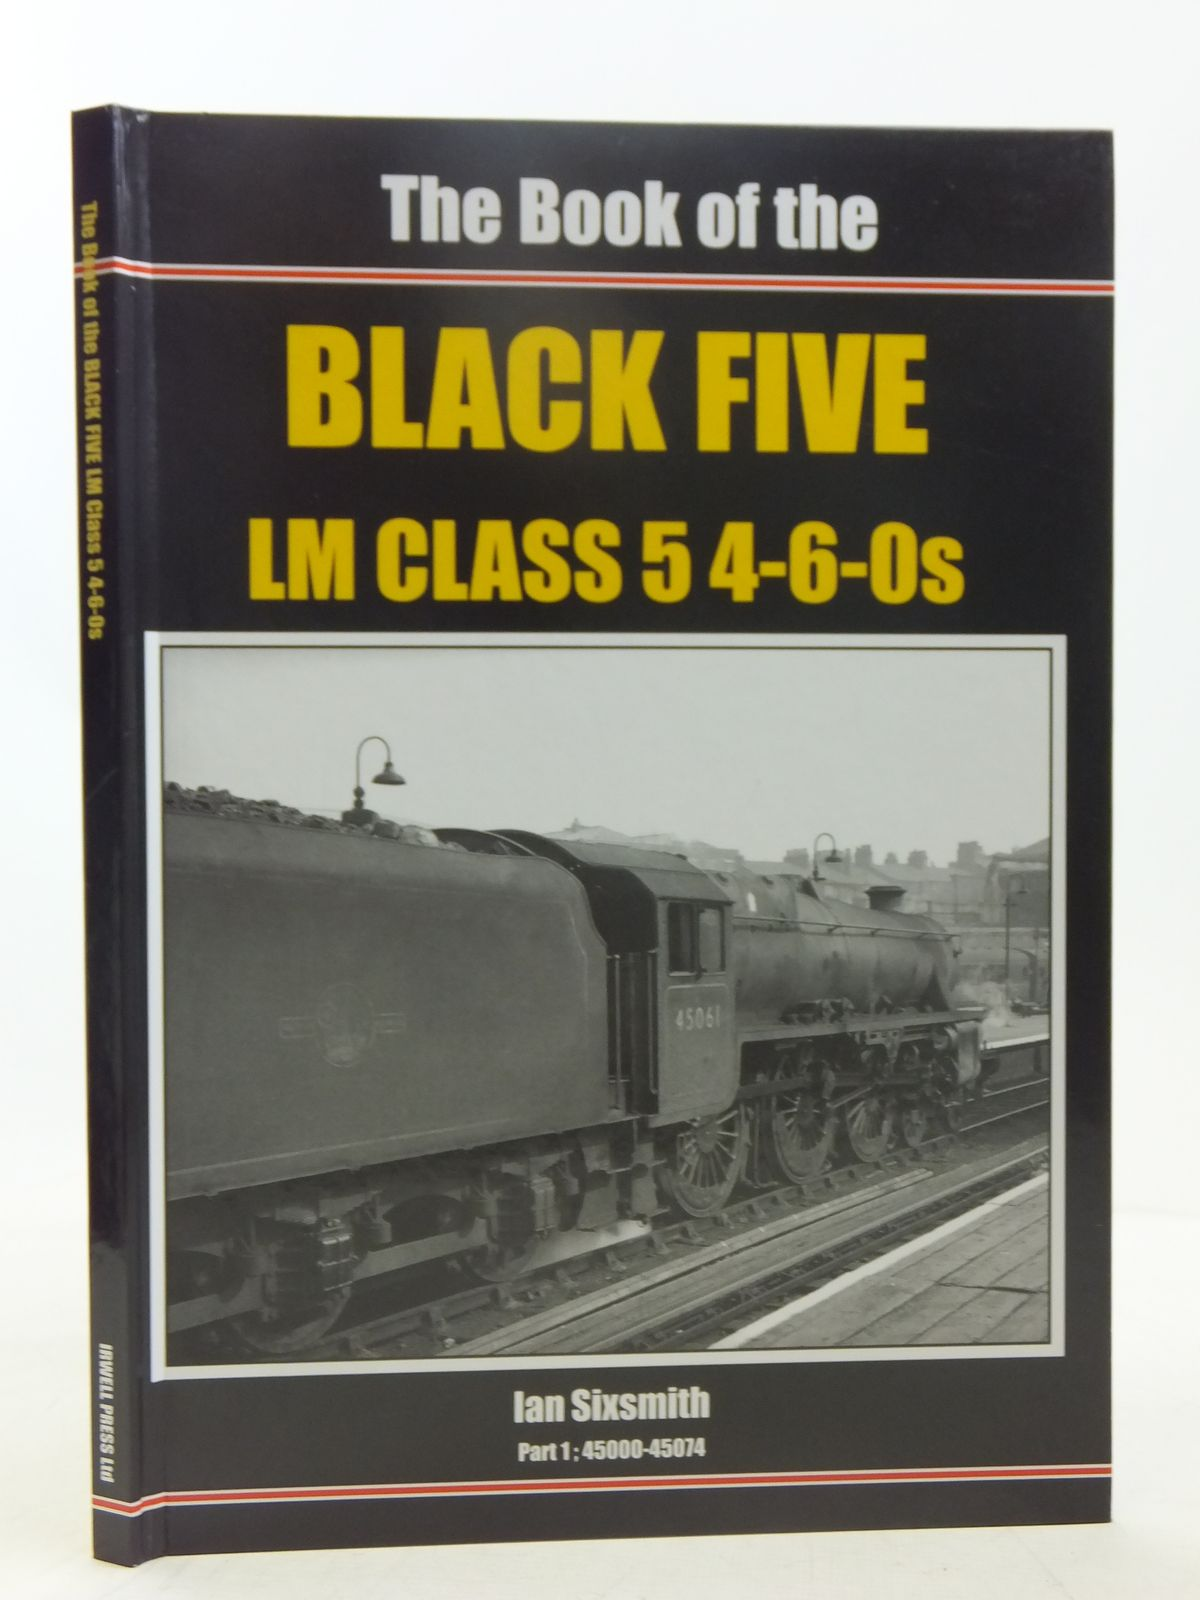 Photo of THE BOOK OF THE BLACK FIVE LM CLASS 5 4-6-0S PART 1, 45000-45074 written by Sixsmith, Ian published by Irwell Press (STOCK CODE: 2118315)  for sale by Stella & Rose's Books